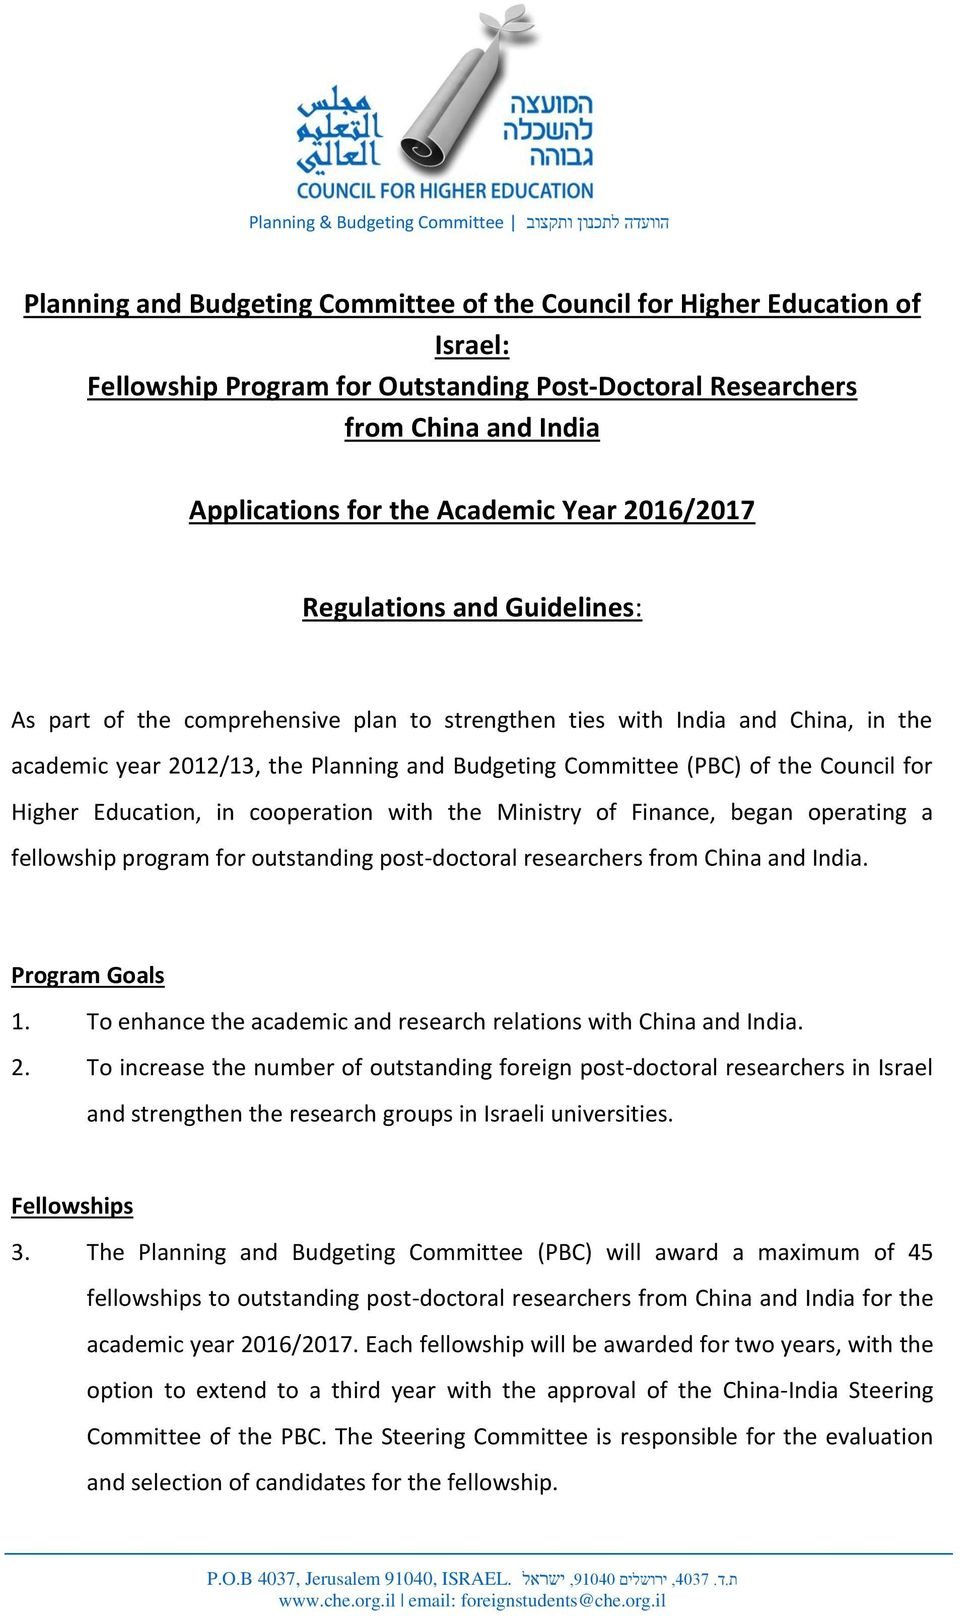 Budgeting Committee (PBC) of the Council for Higher Education, in cooperation with the Ministry of Finance, began operating a fellowship program for outstanding post-doctoral researchers from China